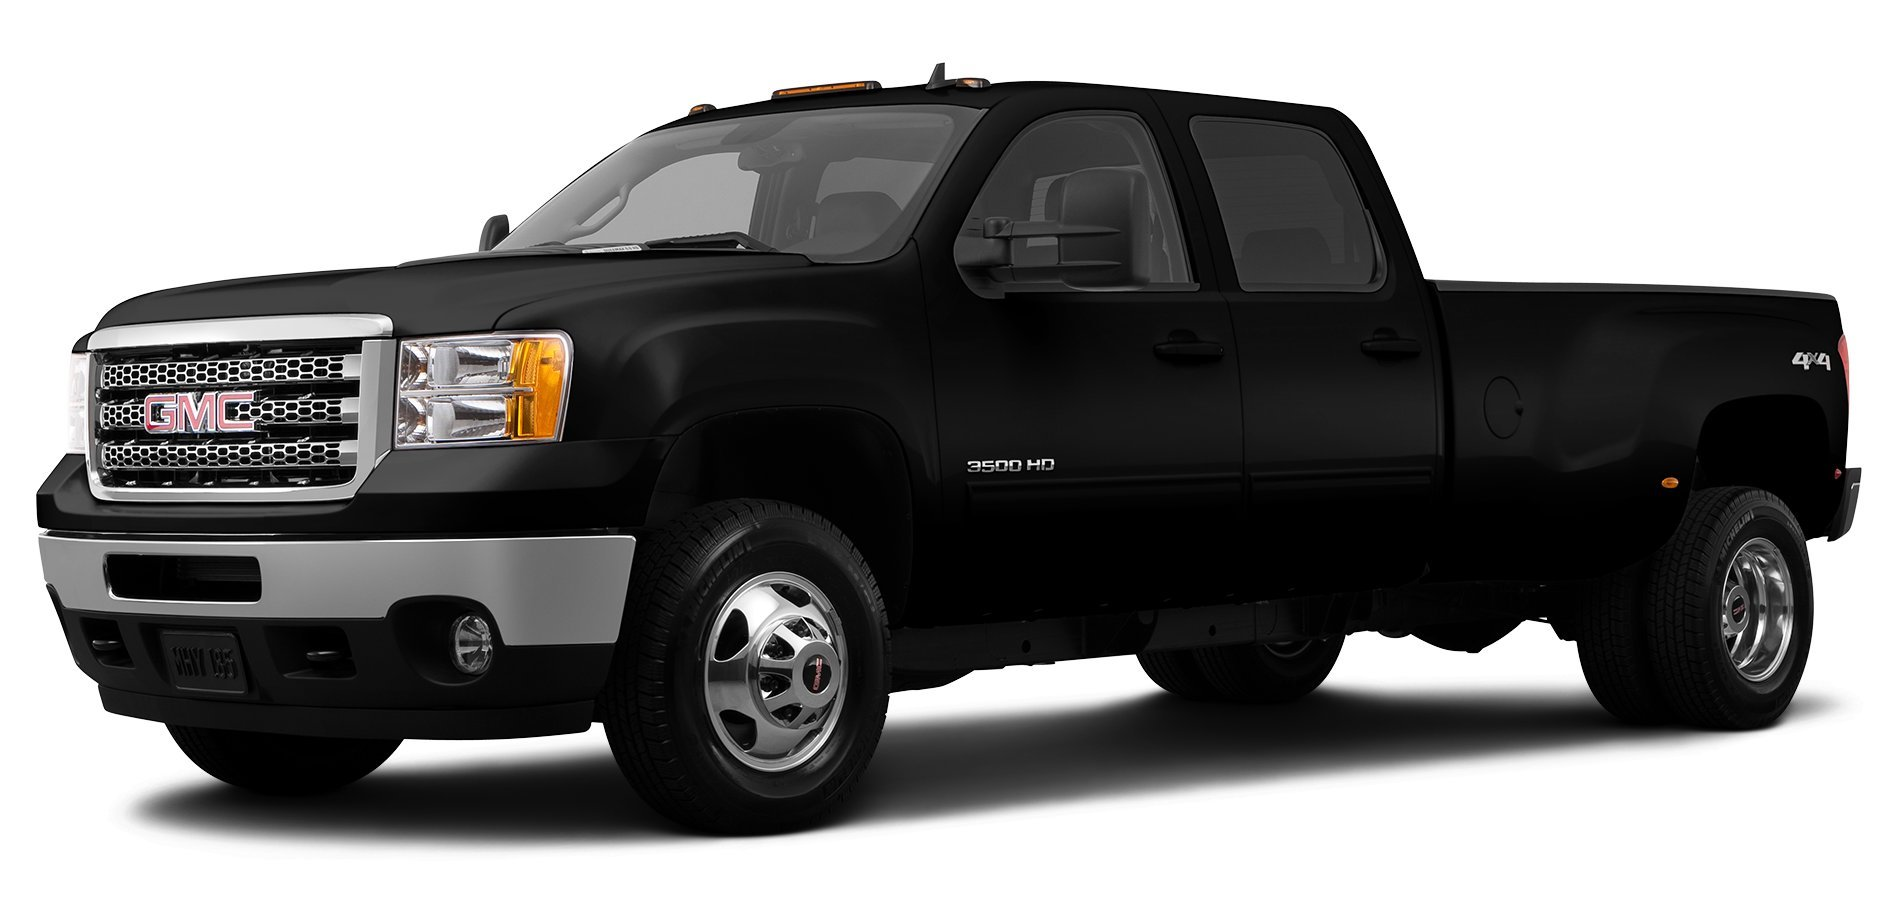 2013 gmc sierra 3500 hd reviews images and. Black Bedroom Furniture Sets. Home Design Ideas